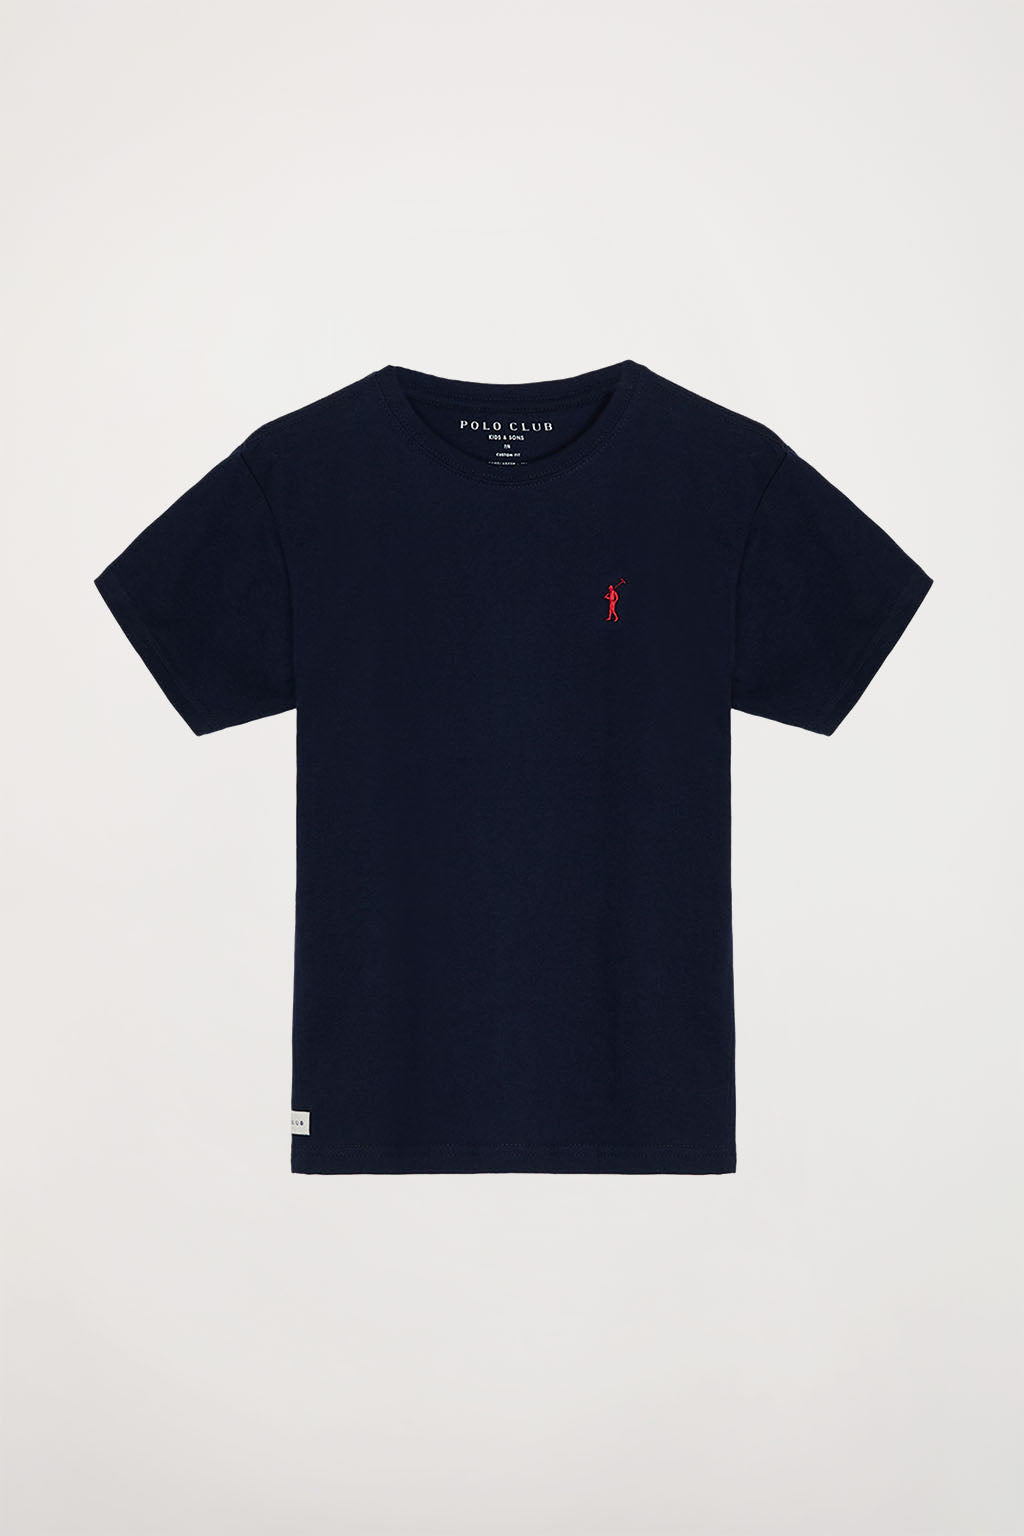 Navy blue tee with small embroidered logo